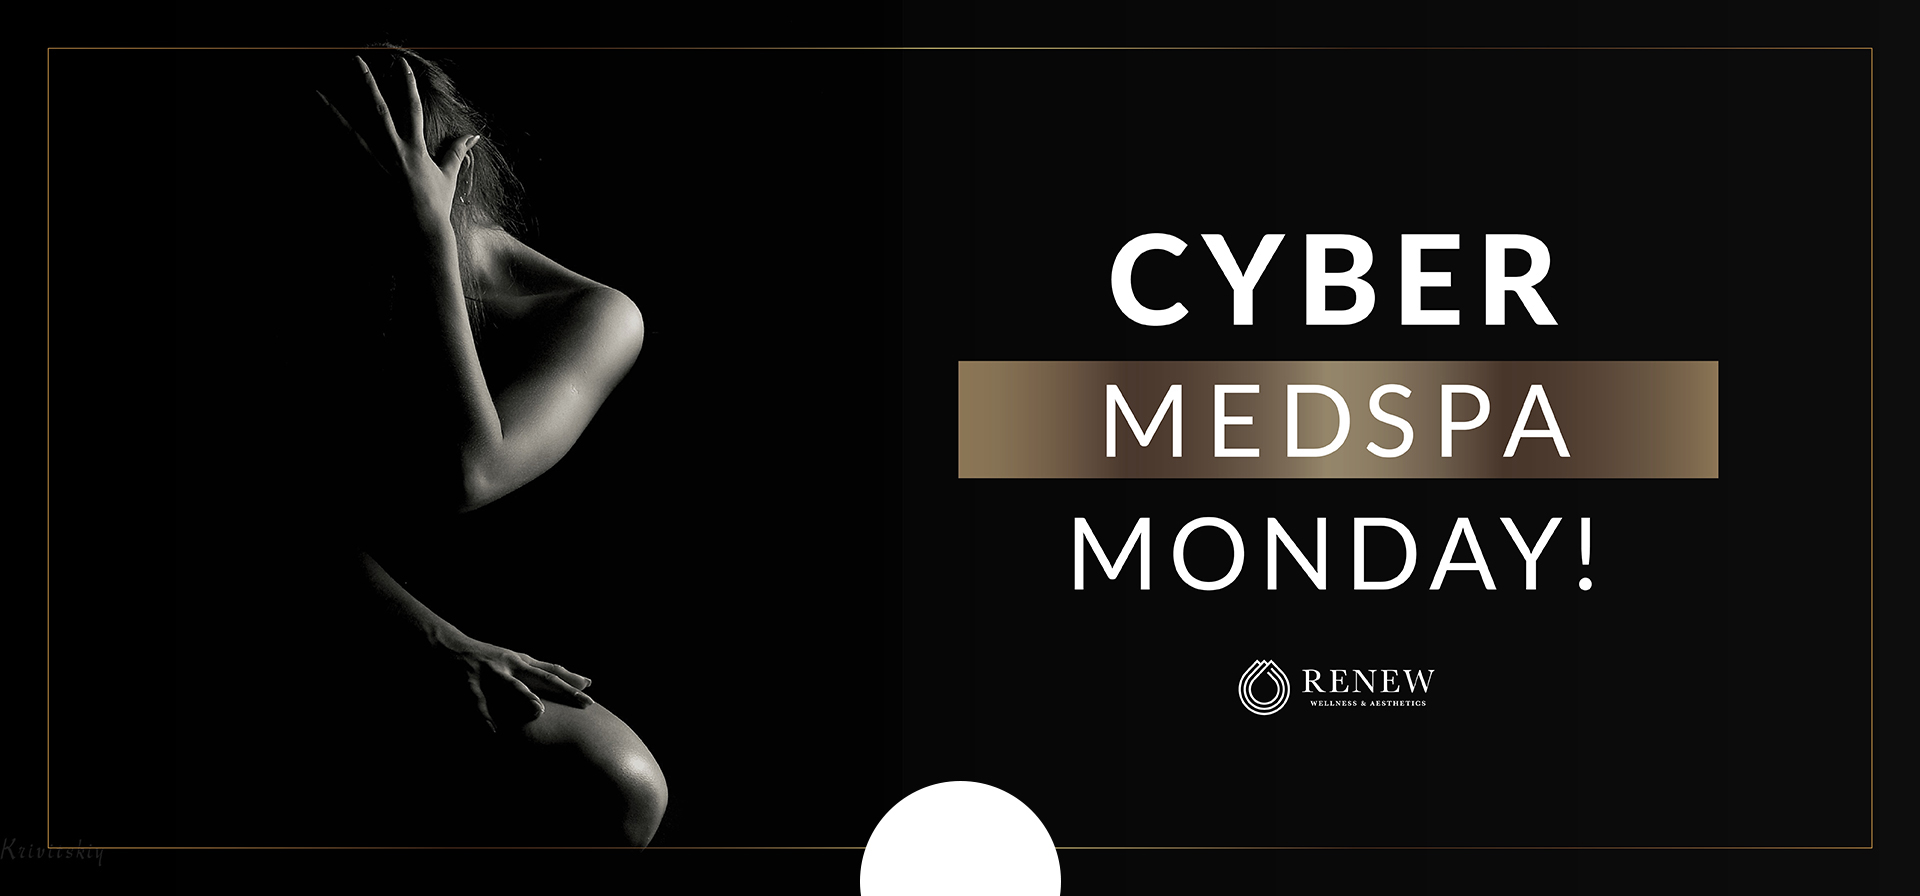 Cyber Medspa Monday – Deals Like Never Before!